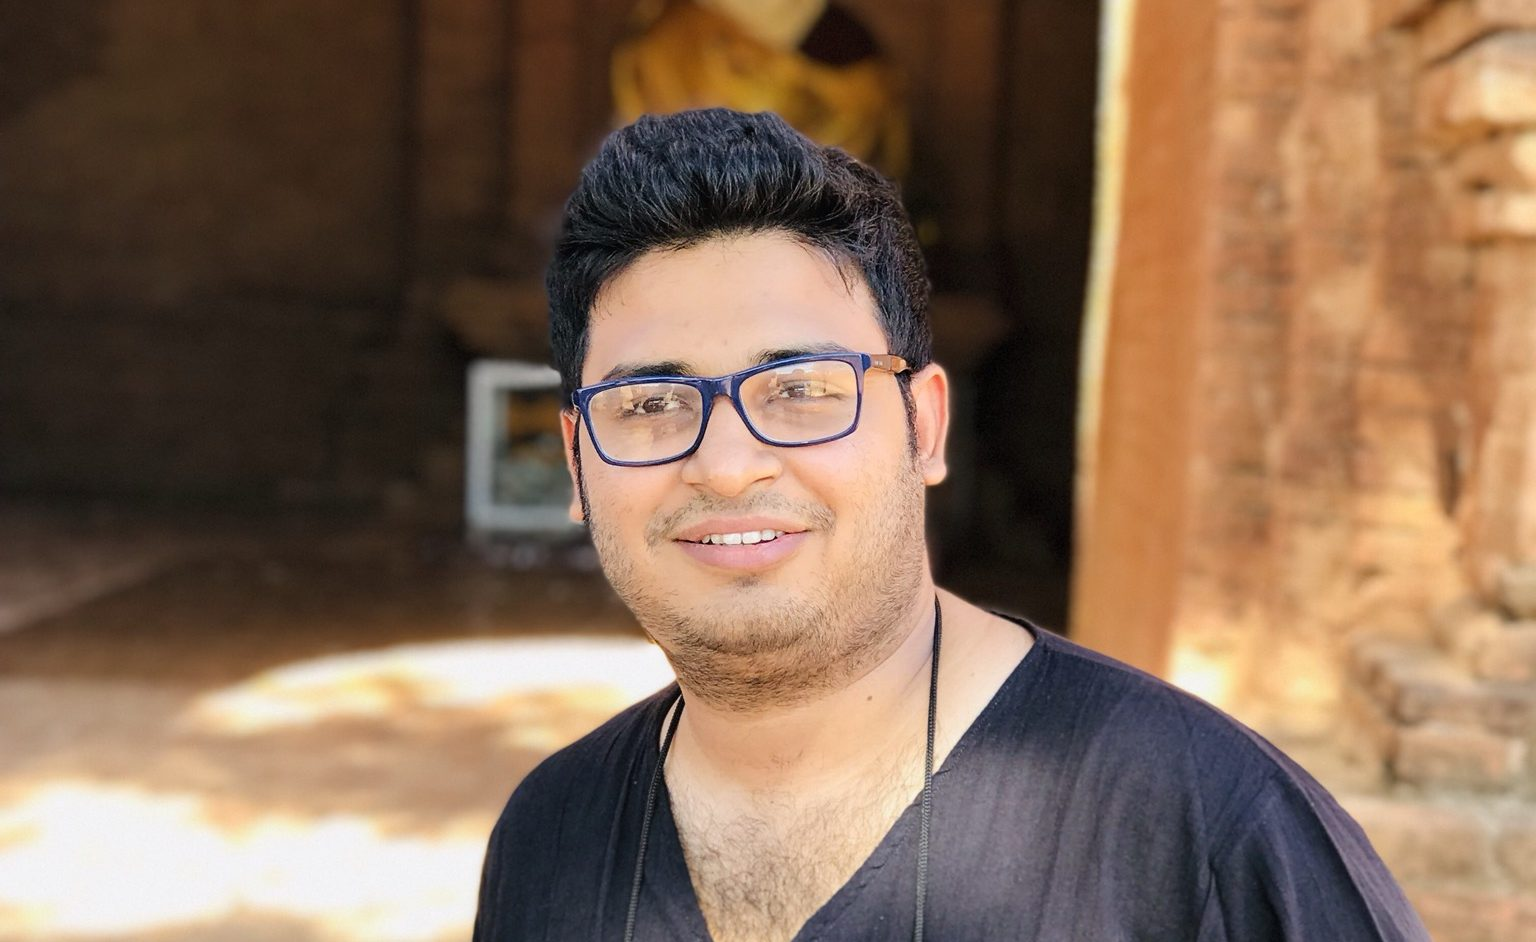 Peacemaking in Myanmar: iPACE and CONTACT alum Harry Myo Lin